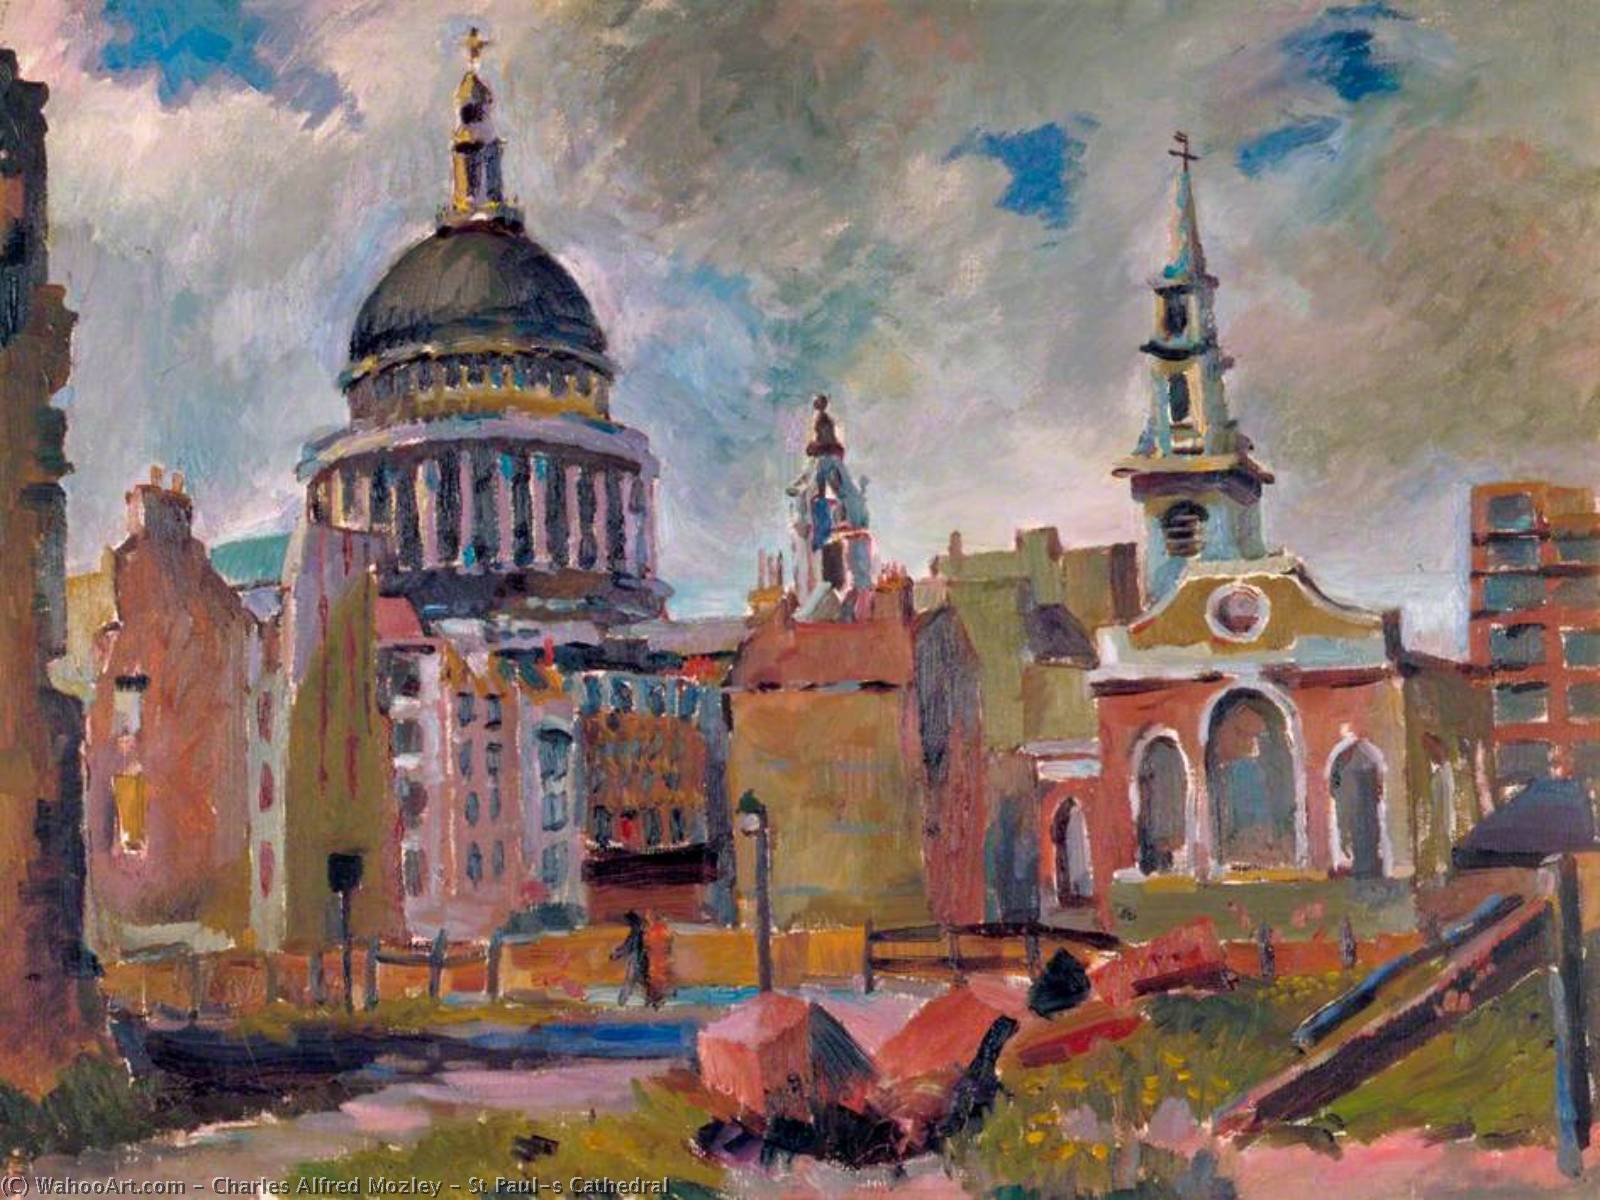 St Paul`s Cathedral, 1940 by Charles Alfred Mozley (1914-1991, United Kingdom) |  | WahooArt.com